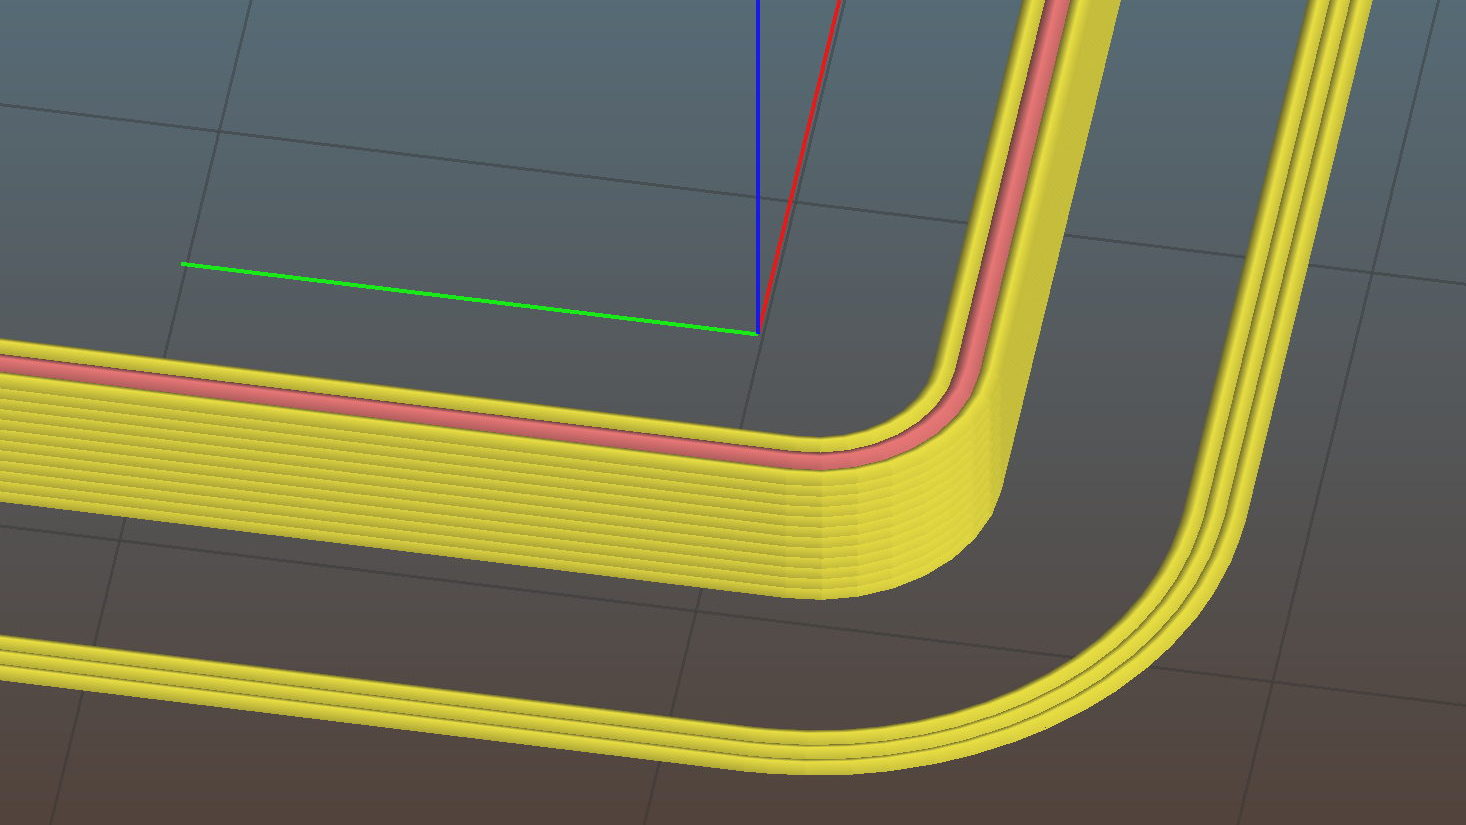 M2 Platform Alignment and Nozzle Height Check: Z Offset